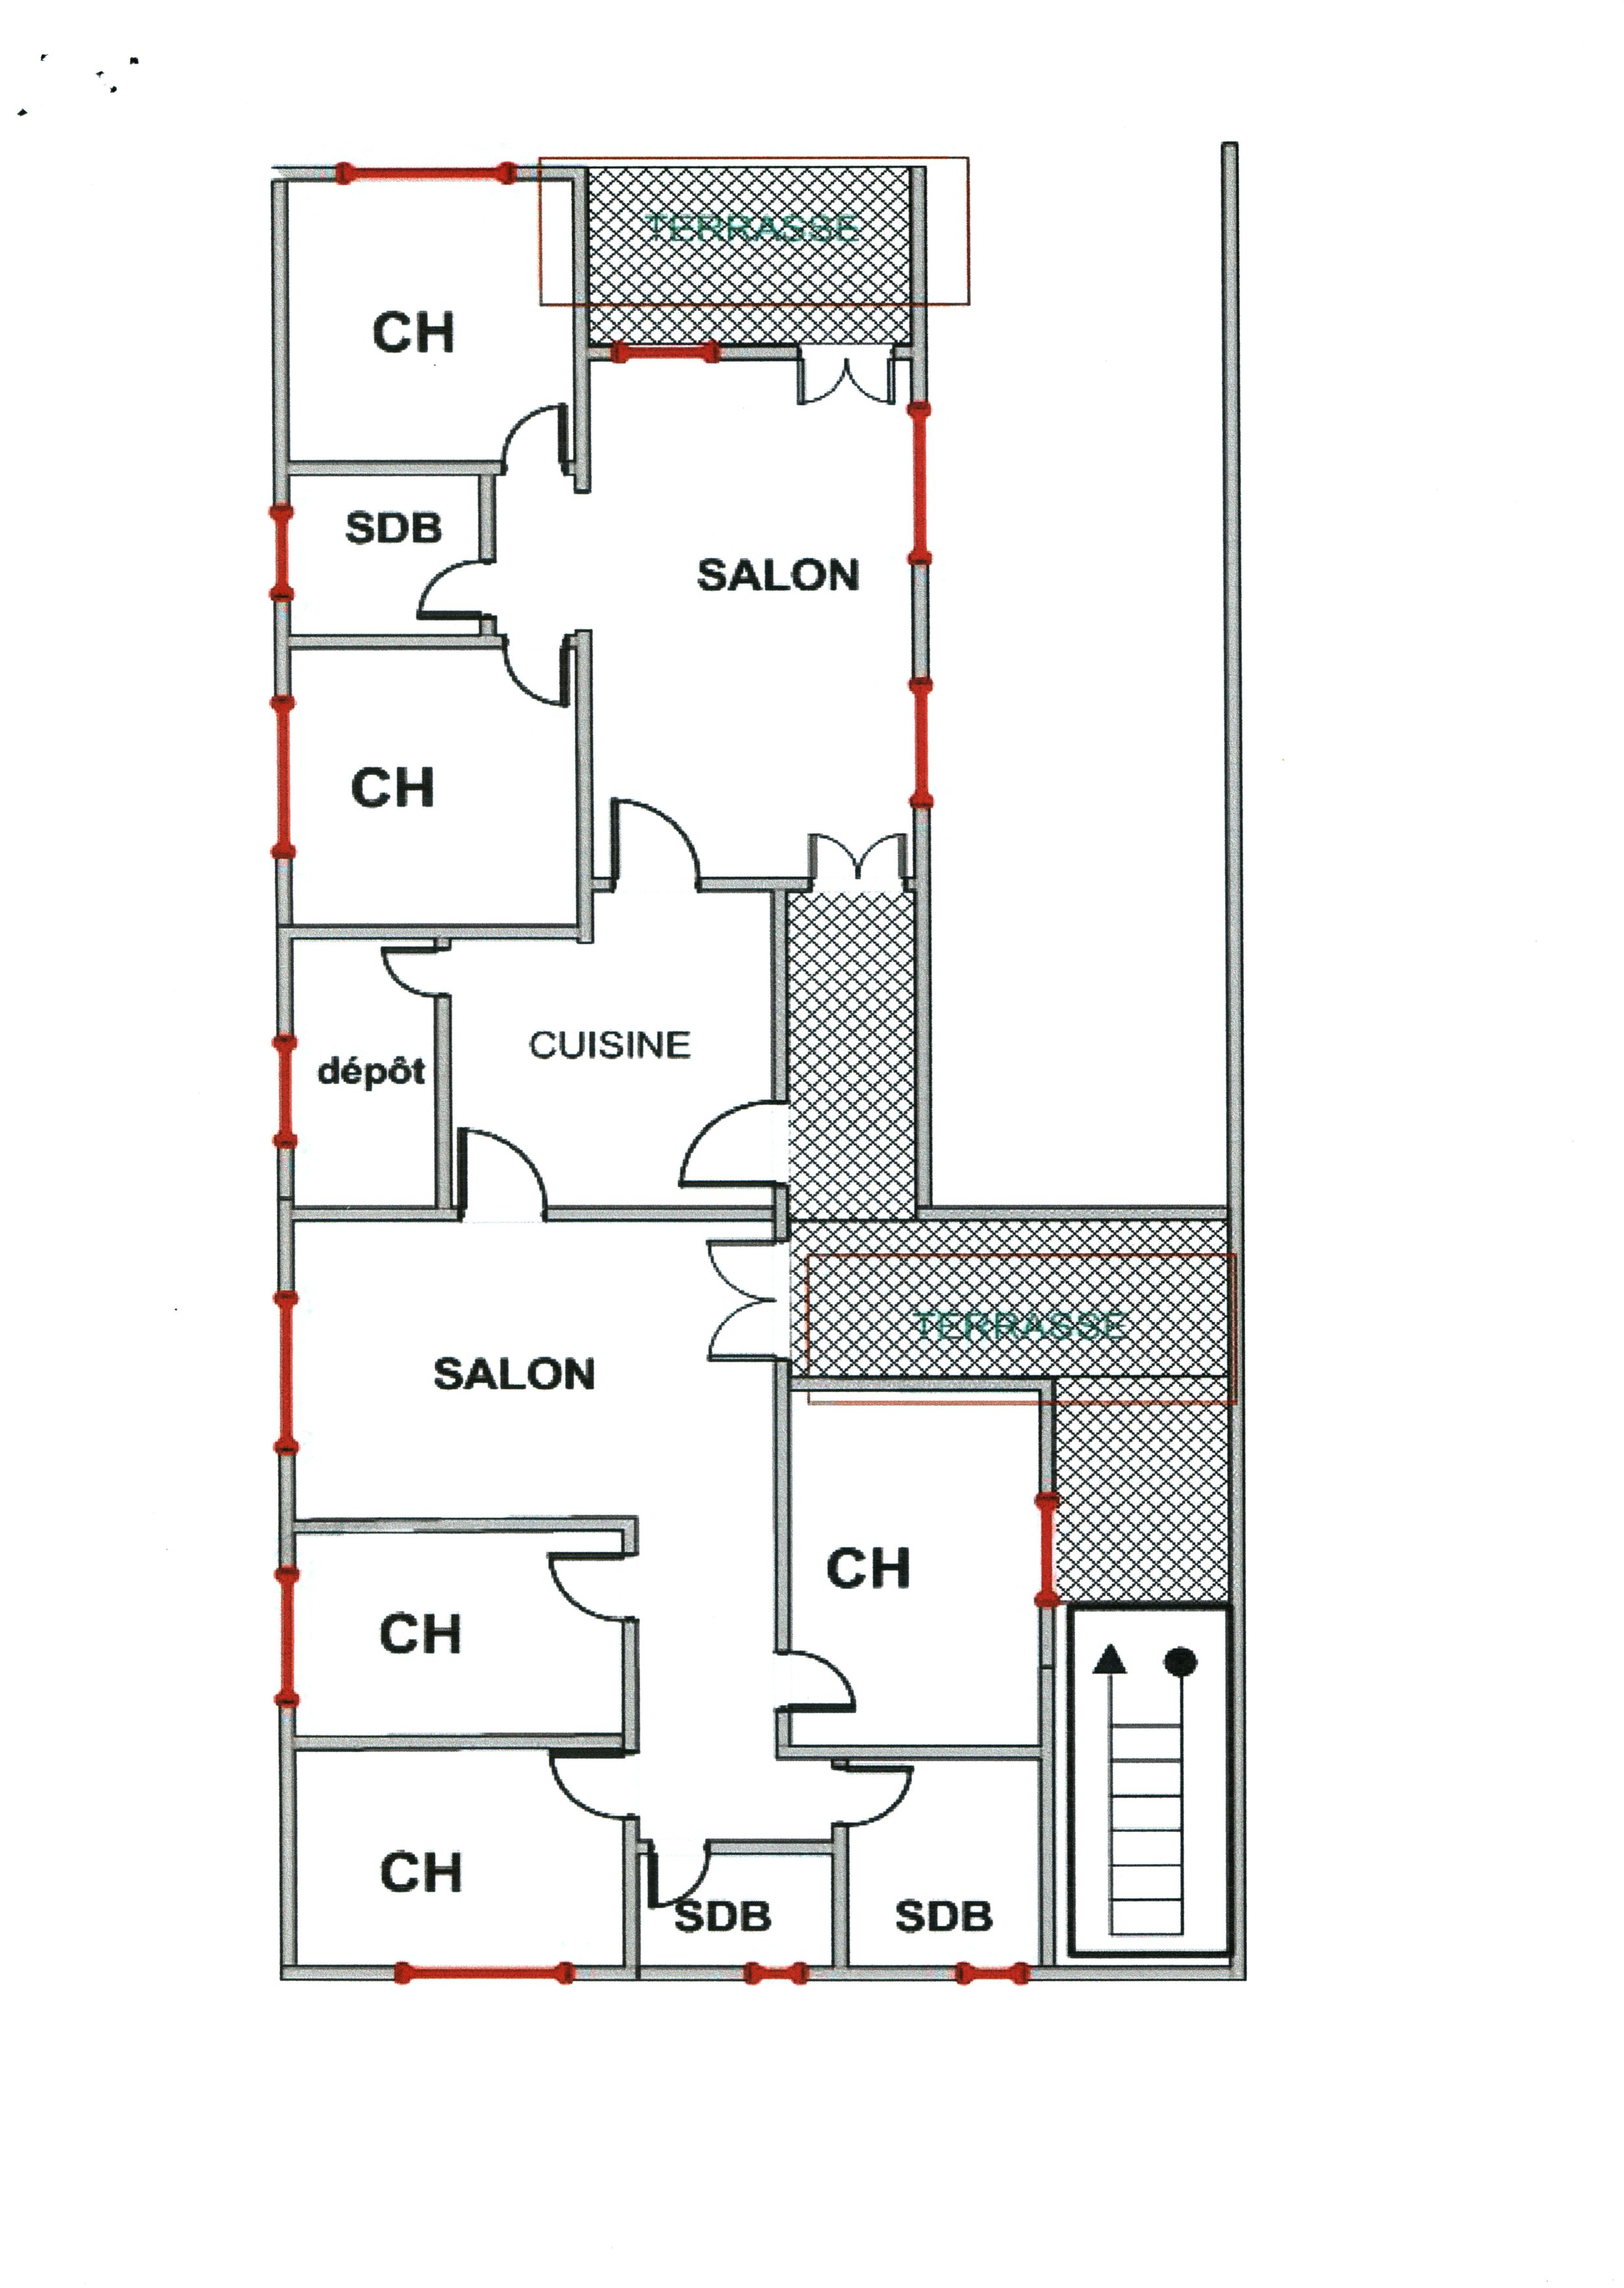 """2  nd   floor: primarily residence area, with dormitories, bath-rooms, kitchen; """"salons"""" can be used for dining or meeting; several small balconies. 3  rd   floor (not pictured) will be one large room extending over half of the structure, for large events (e.g. sewing school graduation) or to rent by the hour to women's or church groups."""